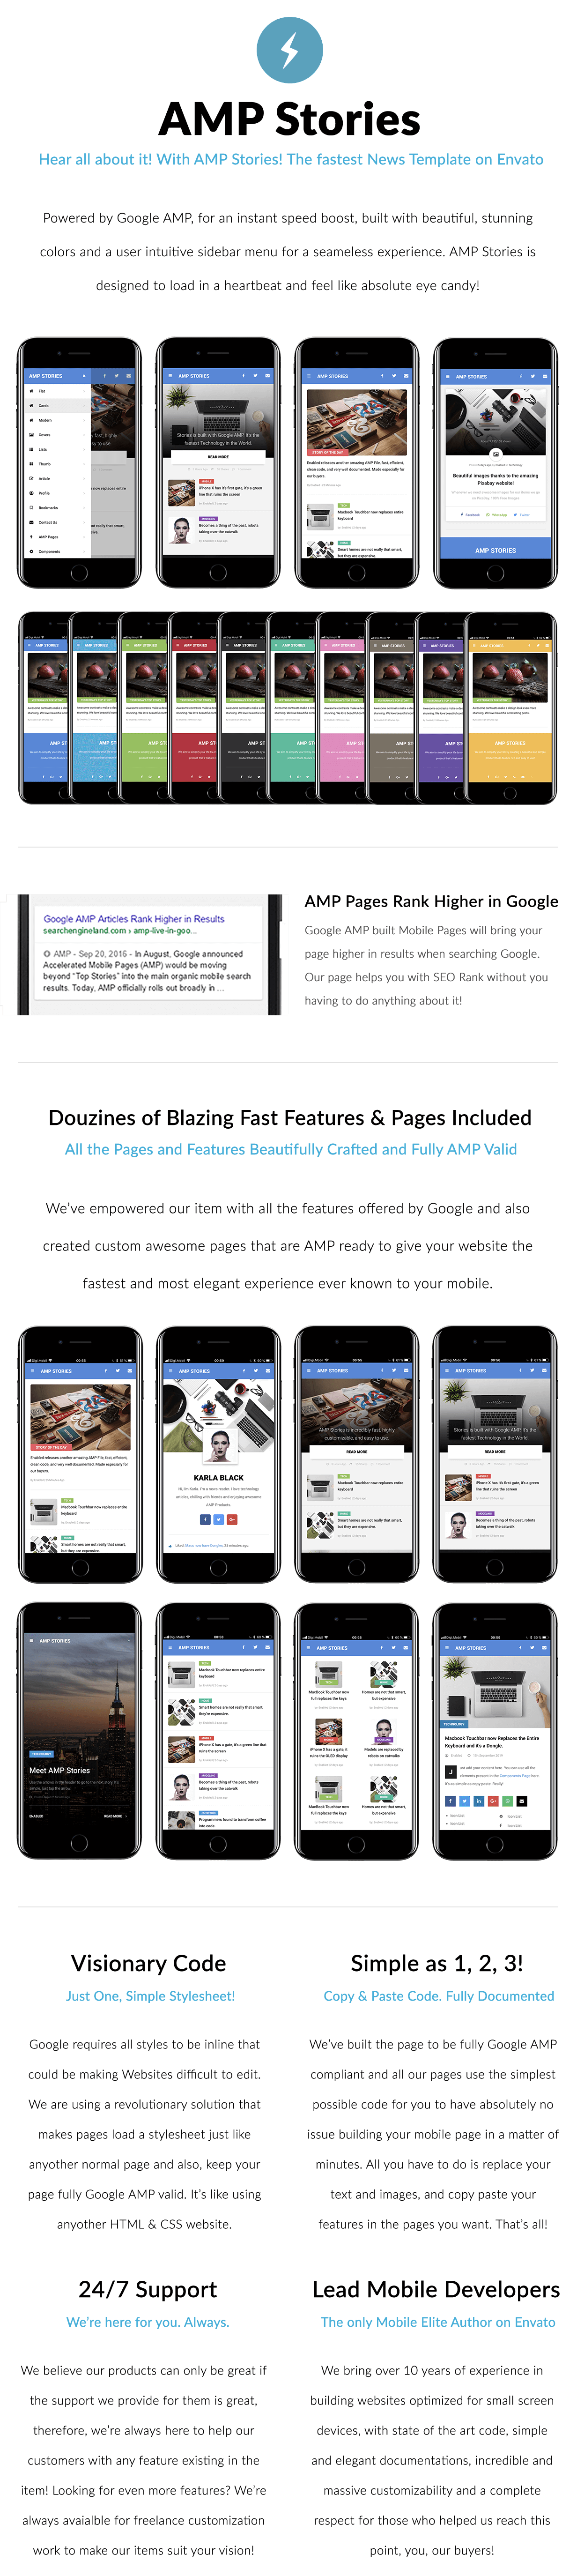 AMP Stories | Mobile Google AMP Template by Enabled | ThemeForest